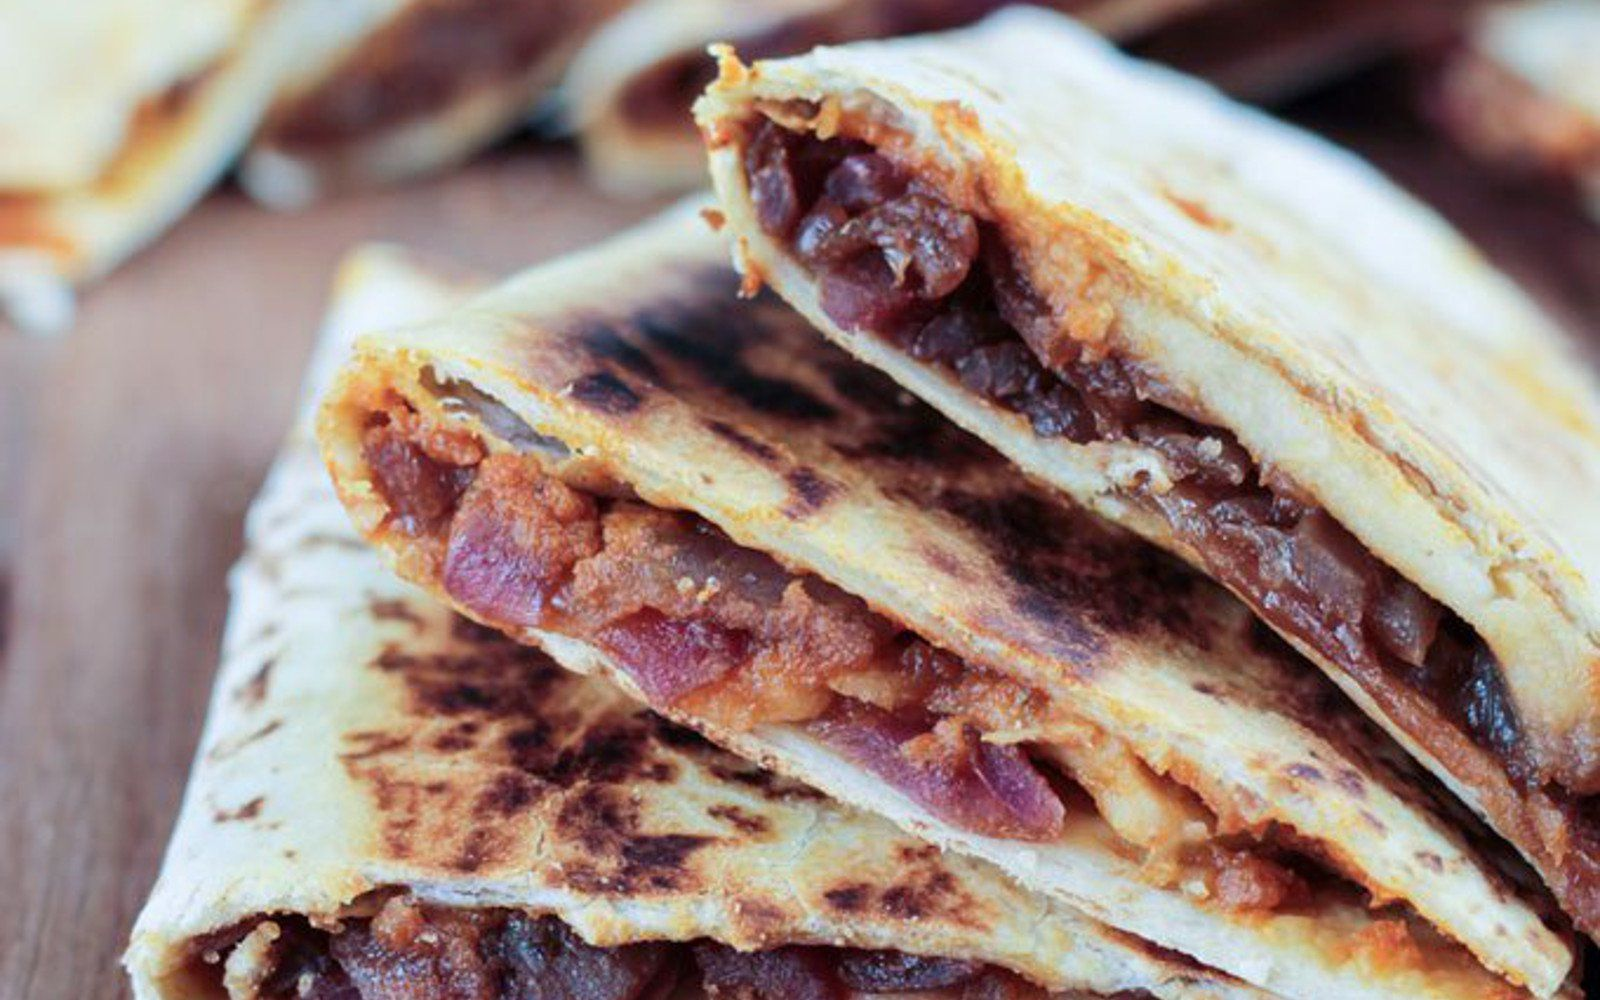 A little creamy, a little crispy, a little sweet, a little smoky, and even a little spicy if desired, these unique quesadillas are a little piece of heaven. Serve them warm with a cool dollop of vegan sour cream.